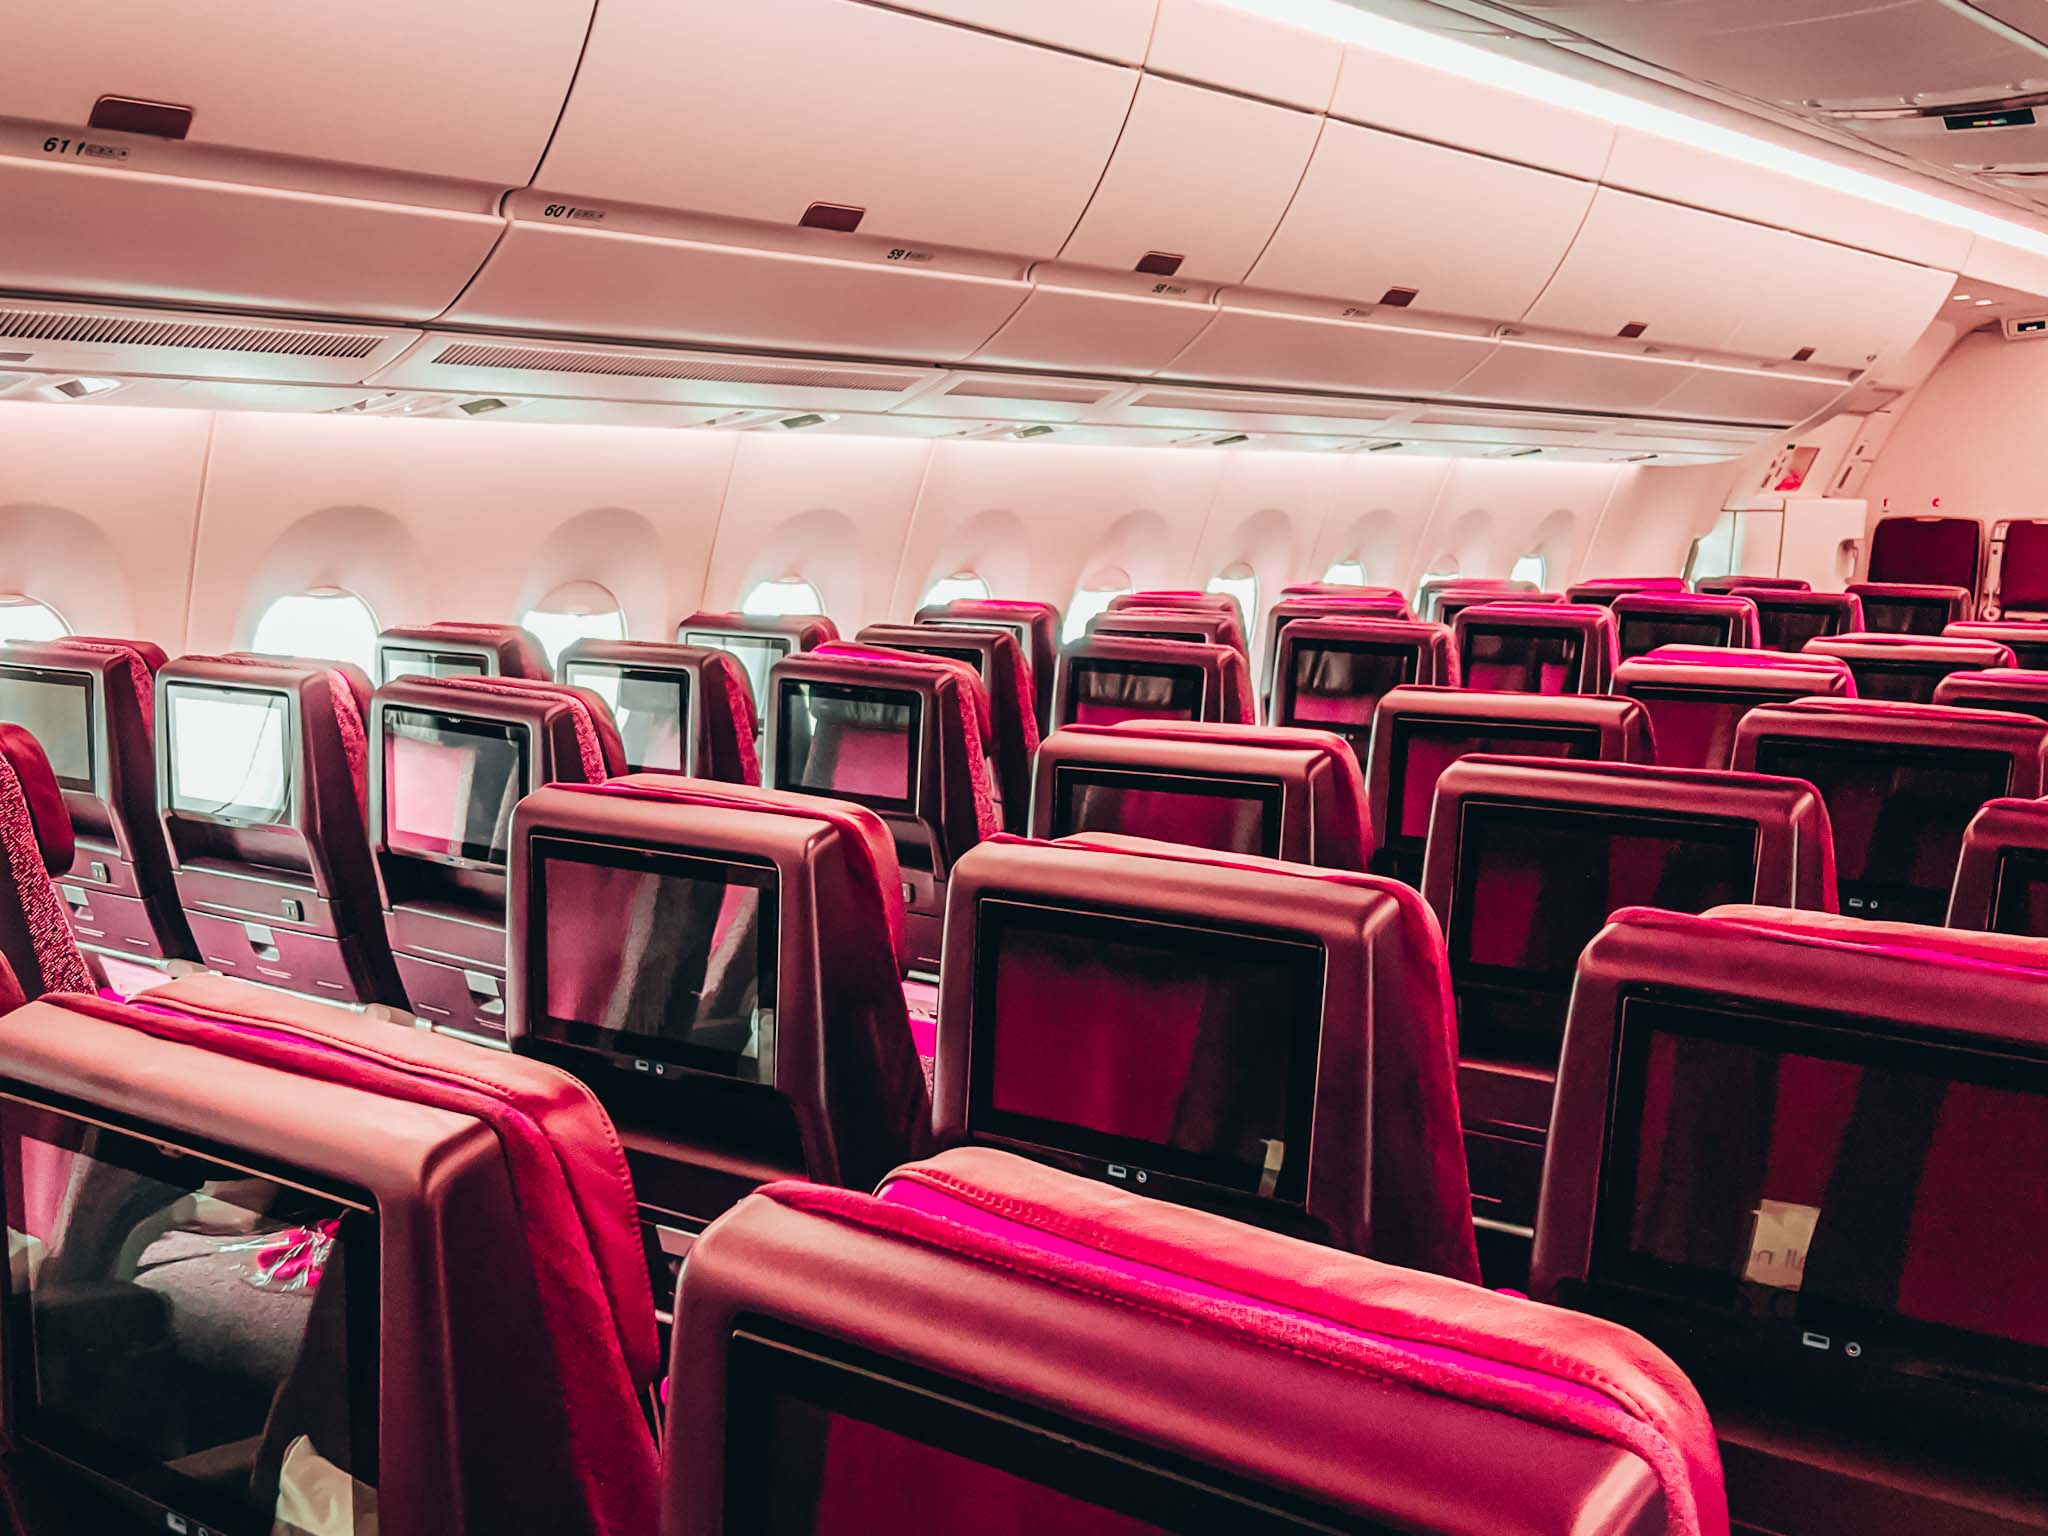 Covid Transmission On Long Haul Flights Is Low, Says CDC Report